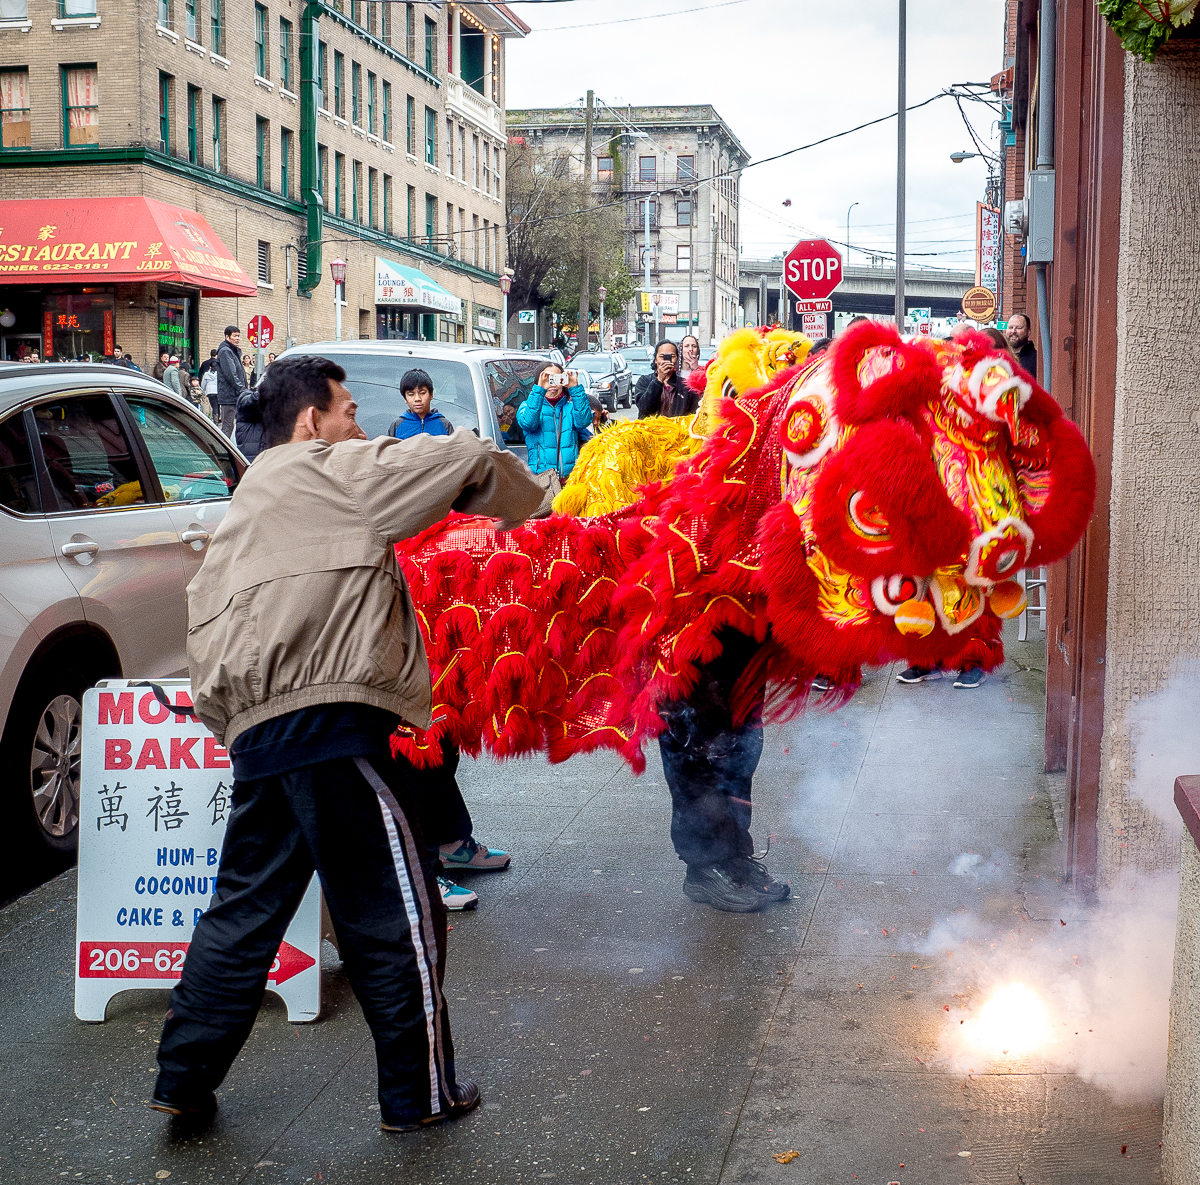 Discover hidden worlds in your own neighborhood like this scene from Seattle's Chinatown